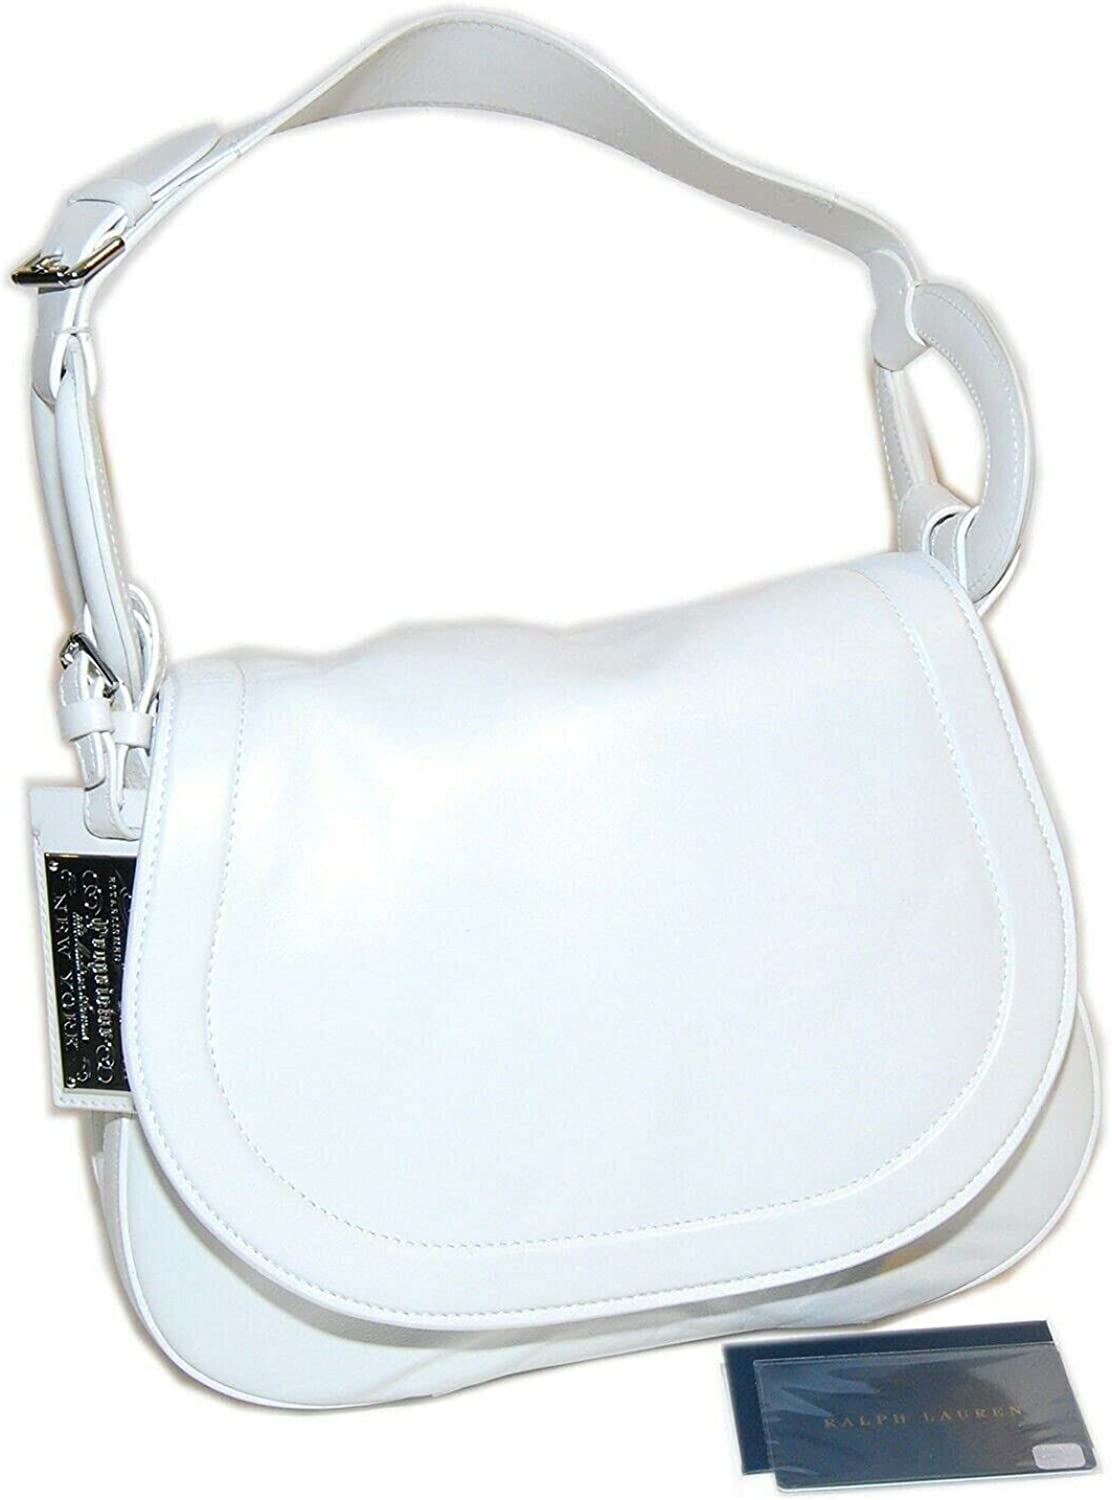 Ralph Lauren Collection Equestrian Womens Leather Handbag Purse Tote Italy White $1,500